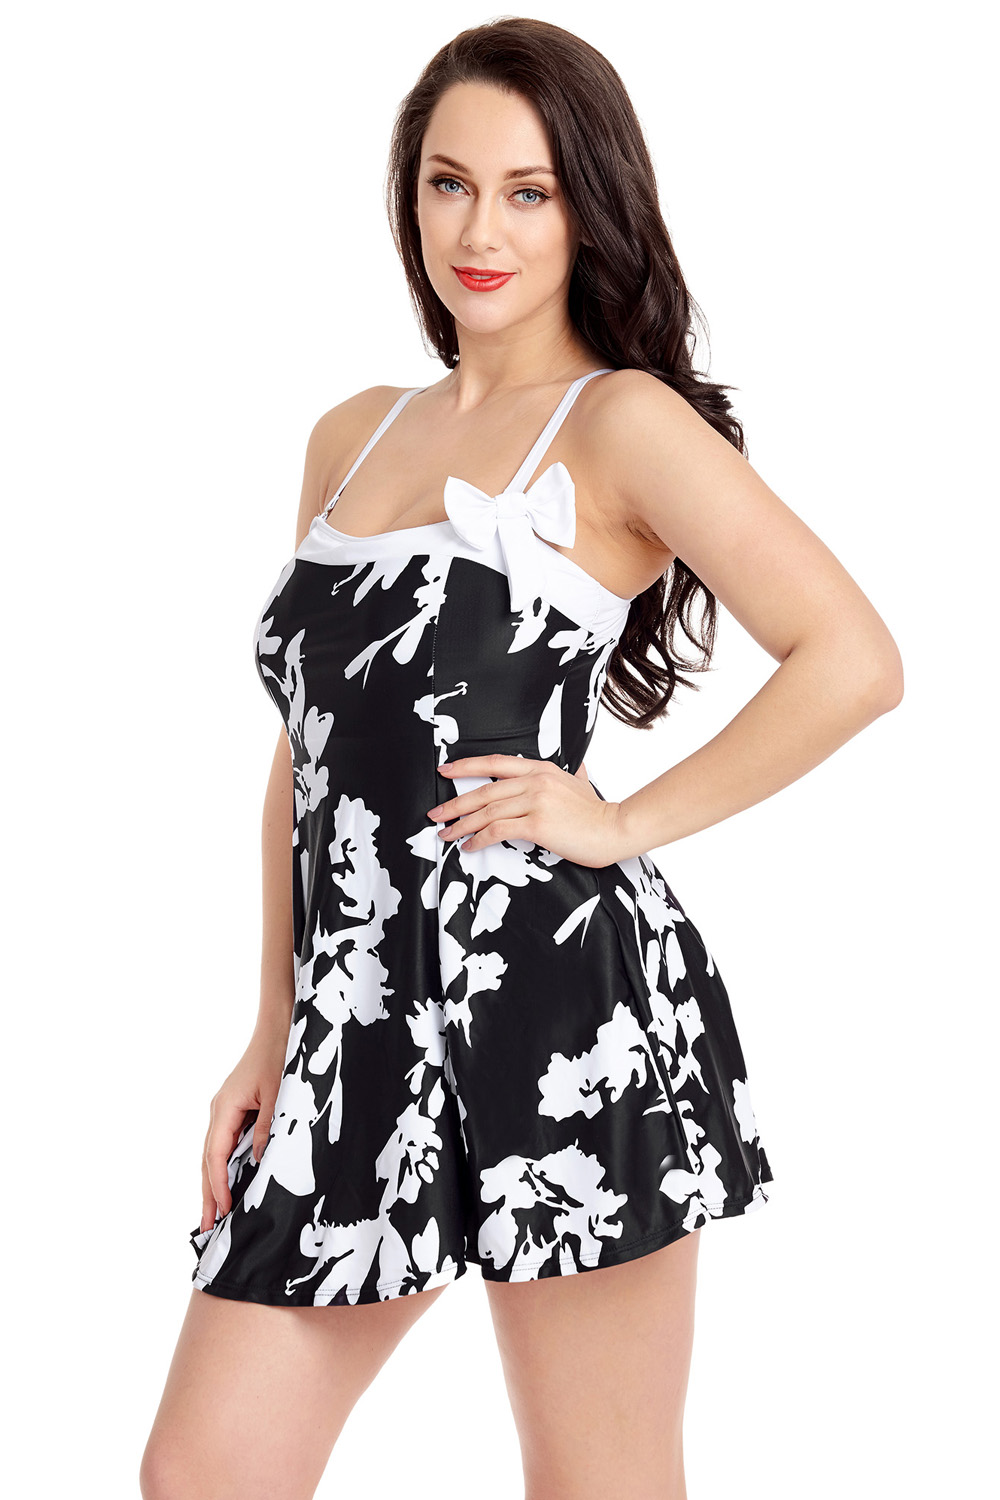 0a525e6ef04bb US$ 7.98 - White Floral Print Black Swimdress with Panty -  www.jnbwholesale.com